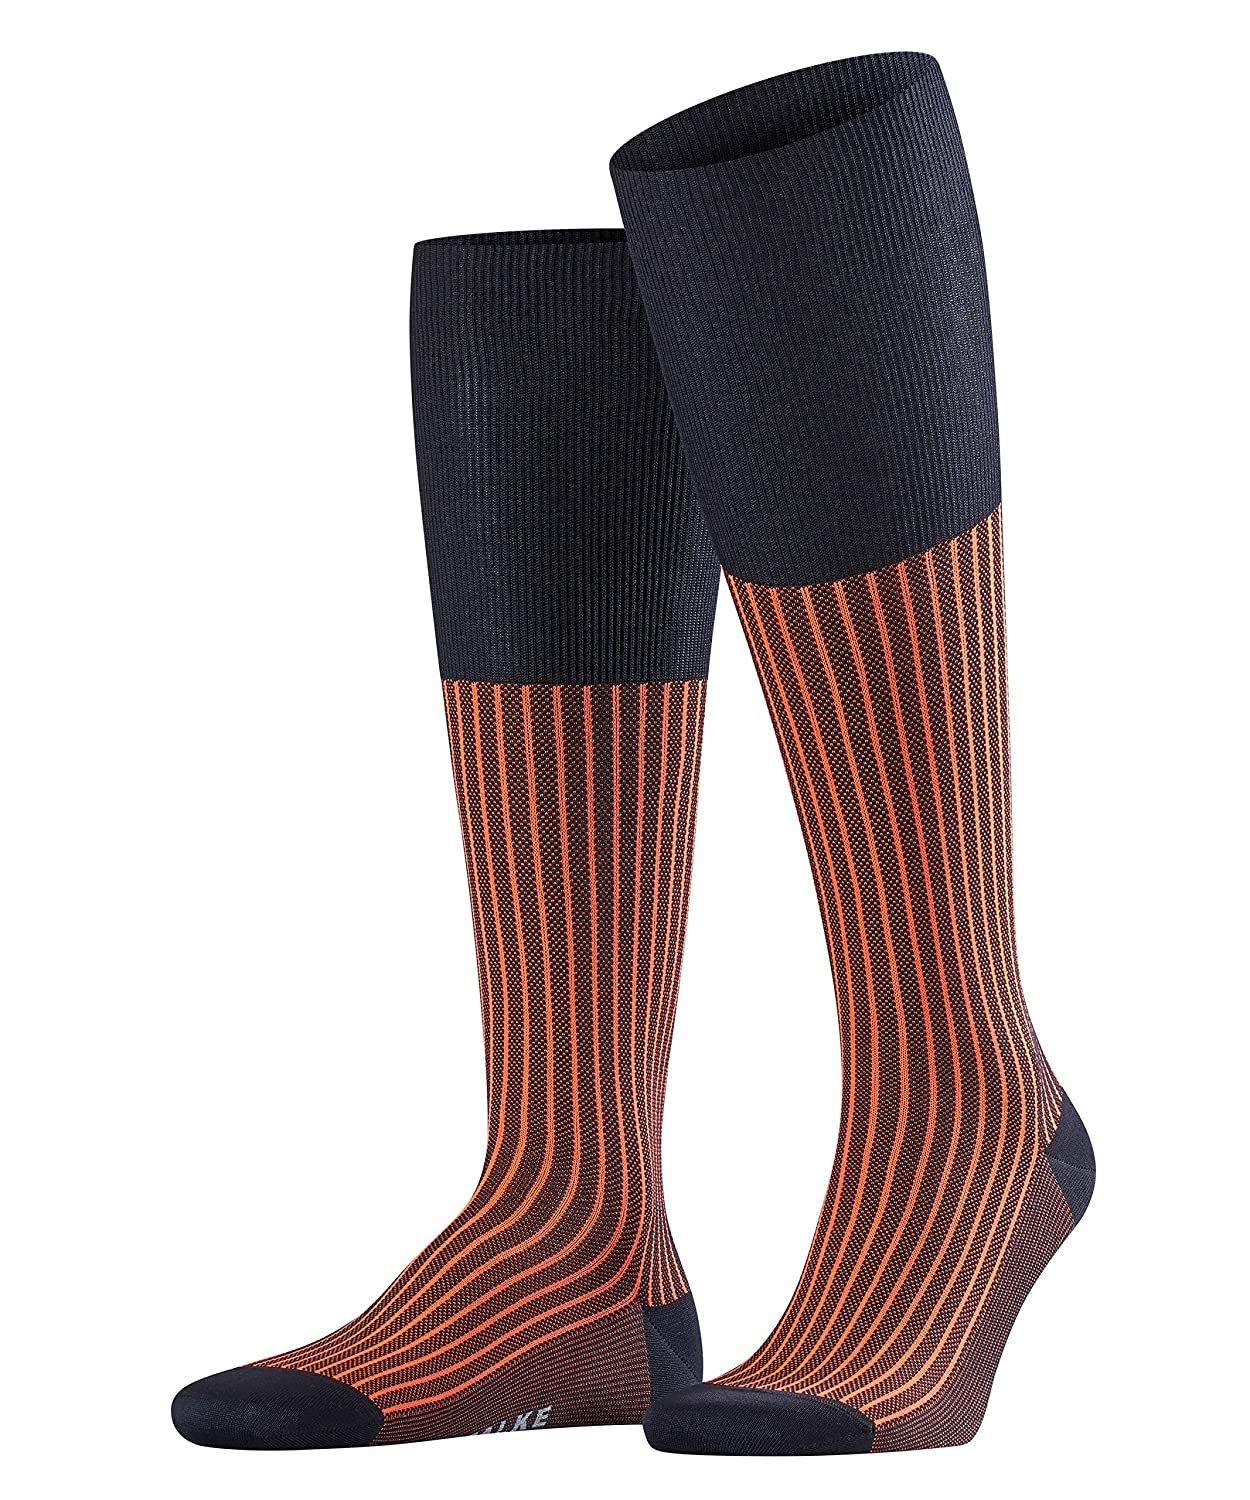 Falso|#Falke Men Oxford Stripe Socks - Dark Navy, 39-40 15749